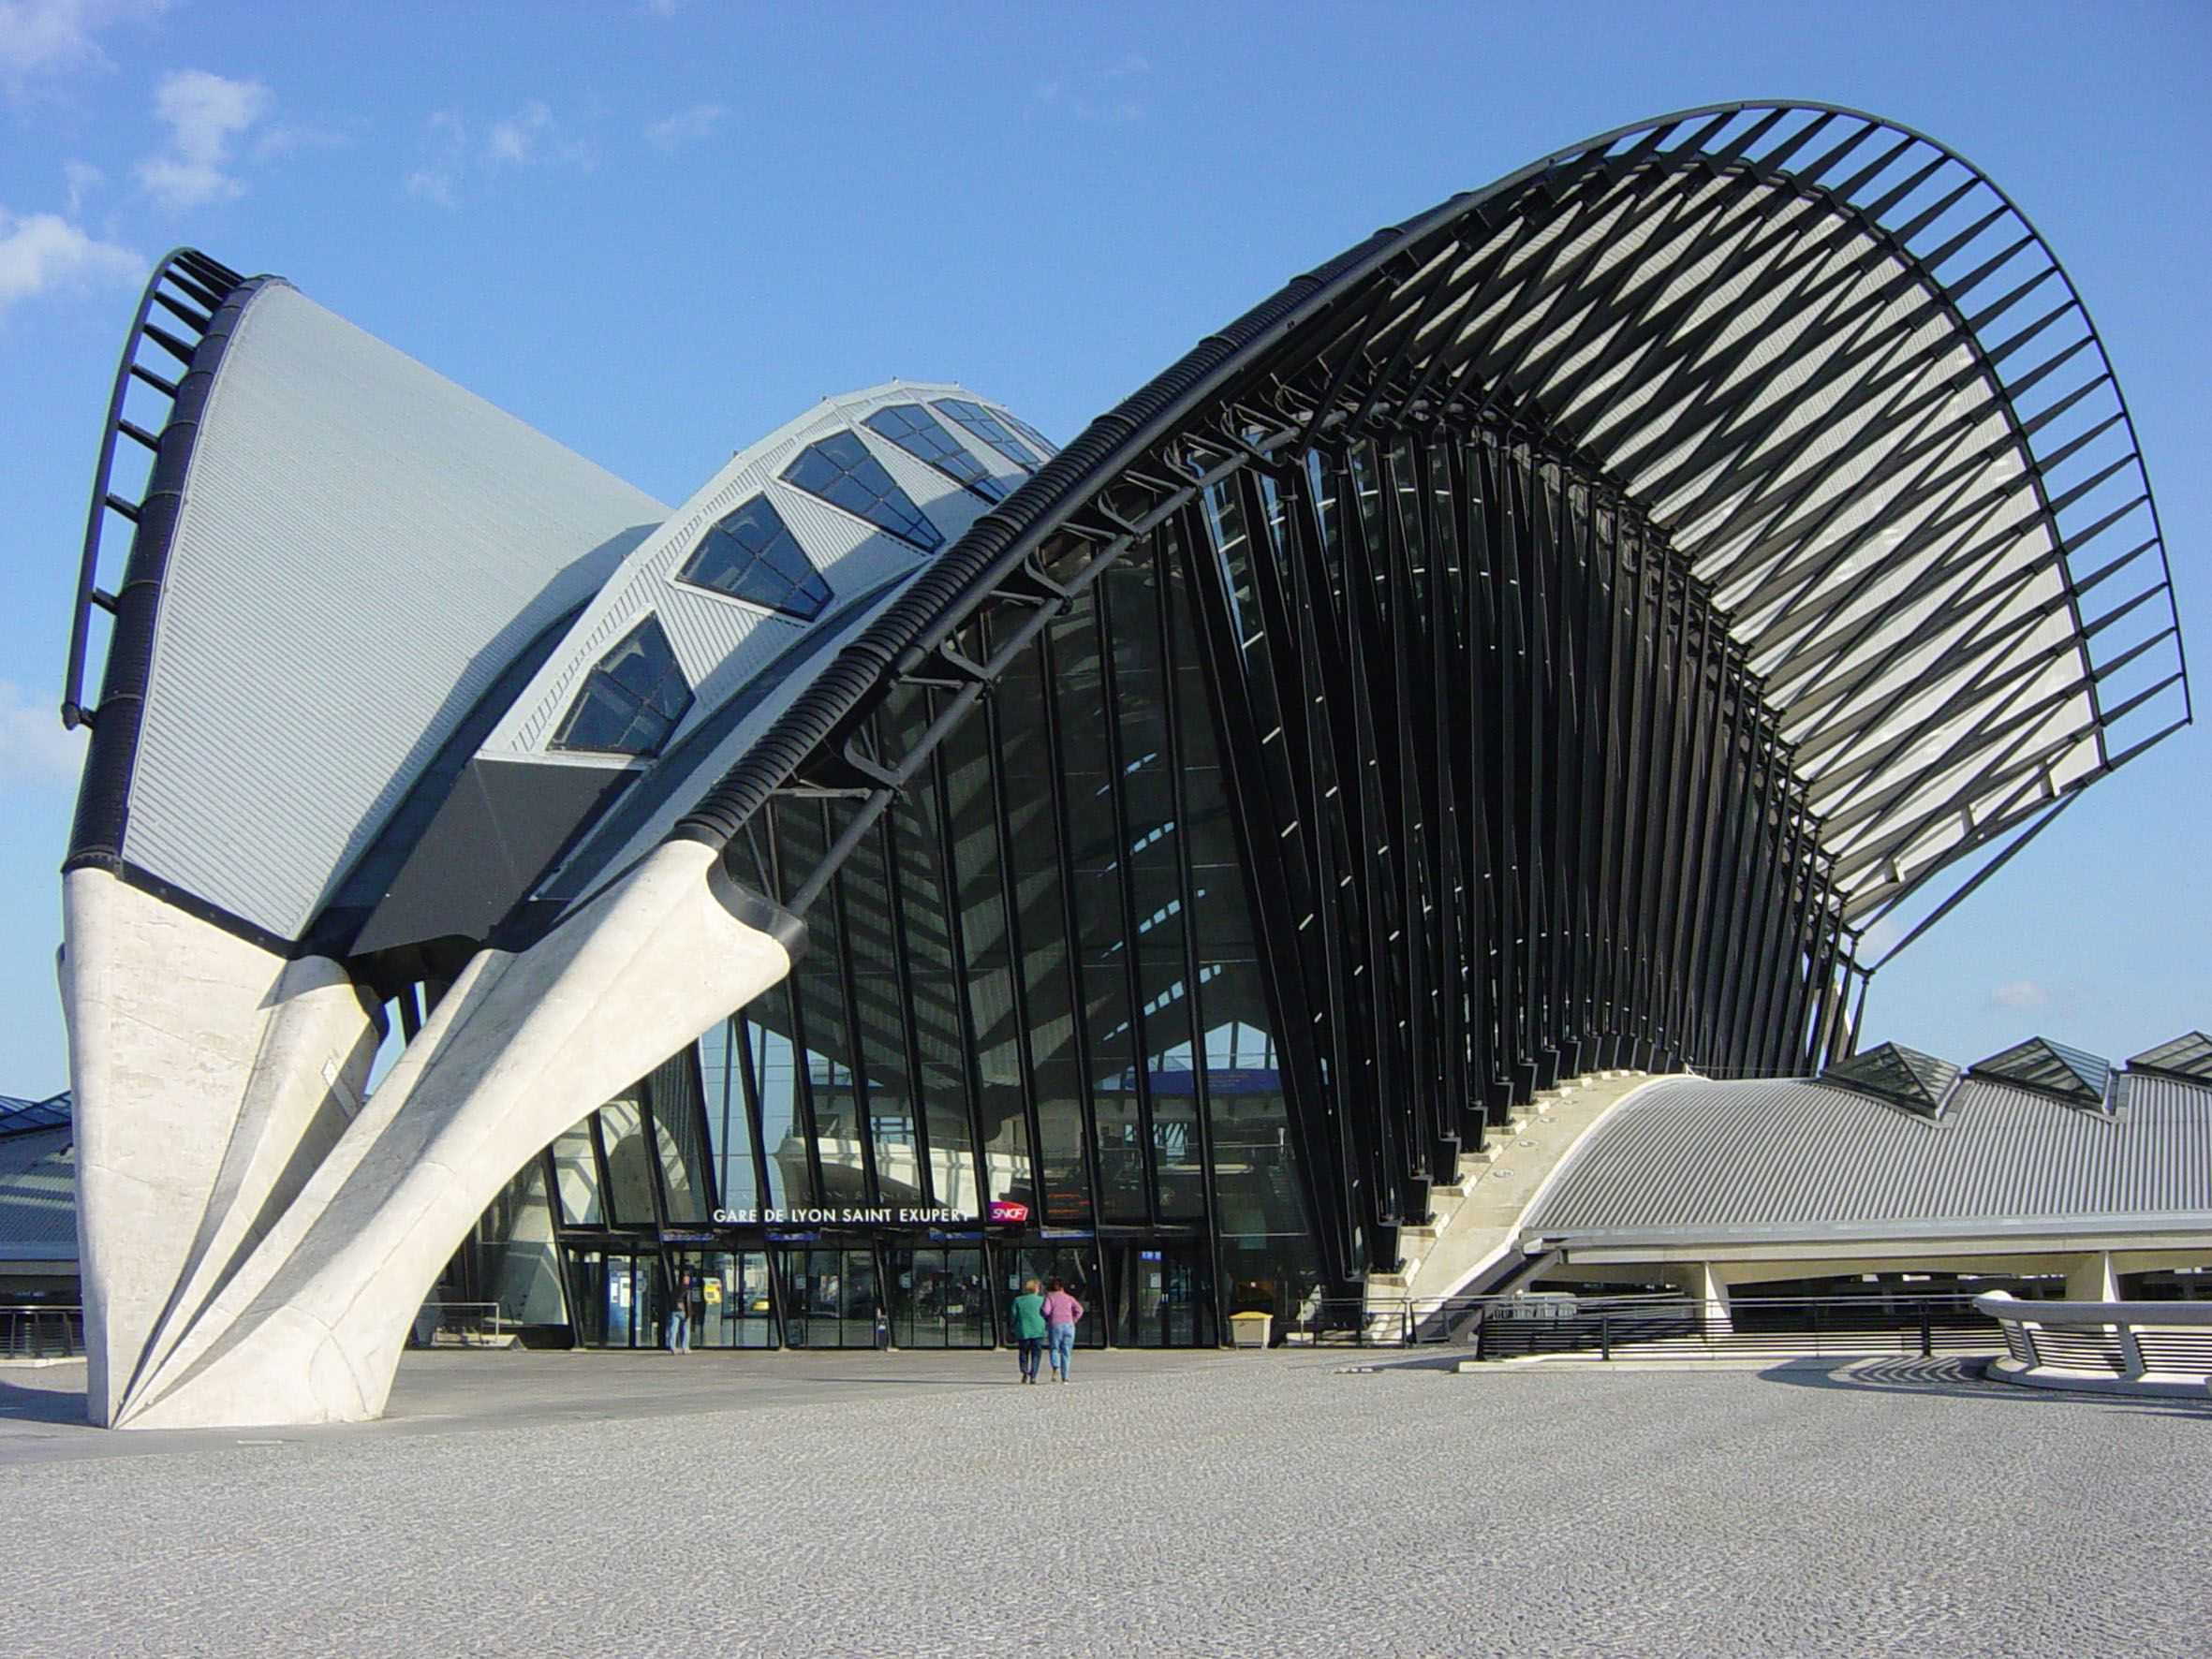 saint exupery tgv station santiago calatrava lyon france calatrava pinte. Black Bedroom Furniture Sets. Home Design Ideas